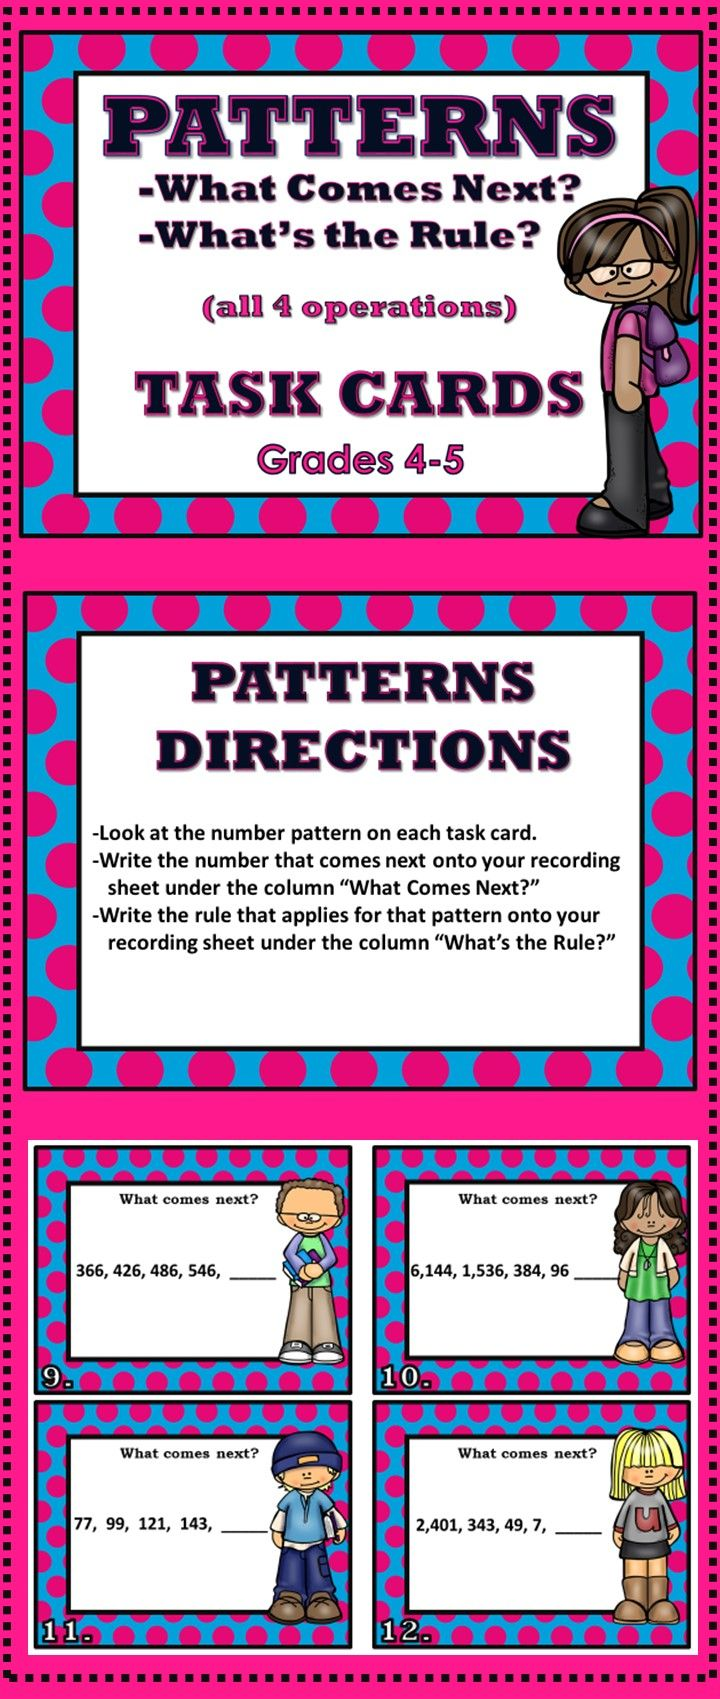 What Comes Next? and What is the Rule? - Dual Action Pattern Task Cards for grade 4 and grade 5